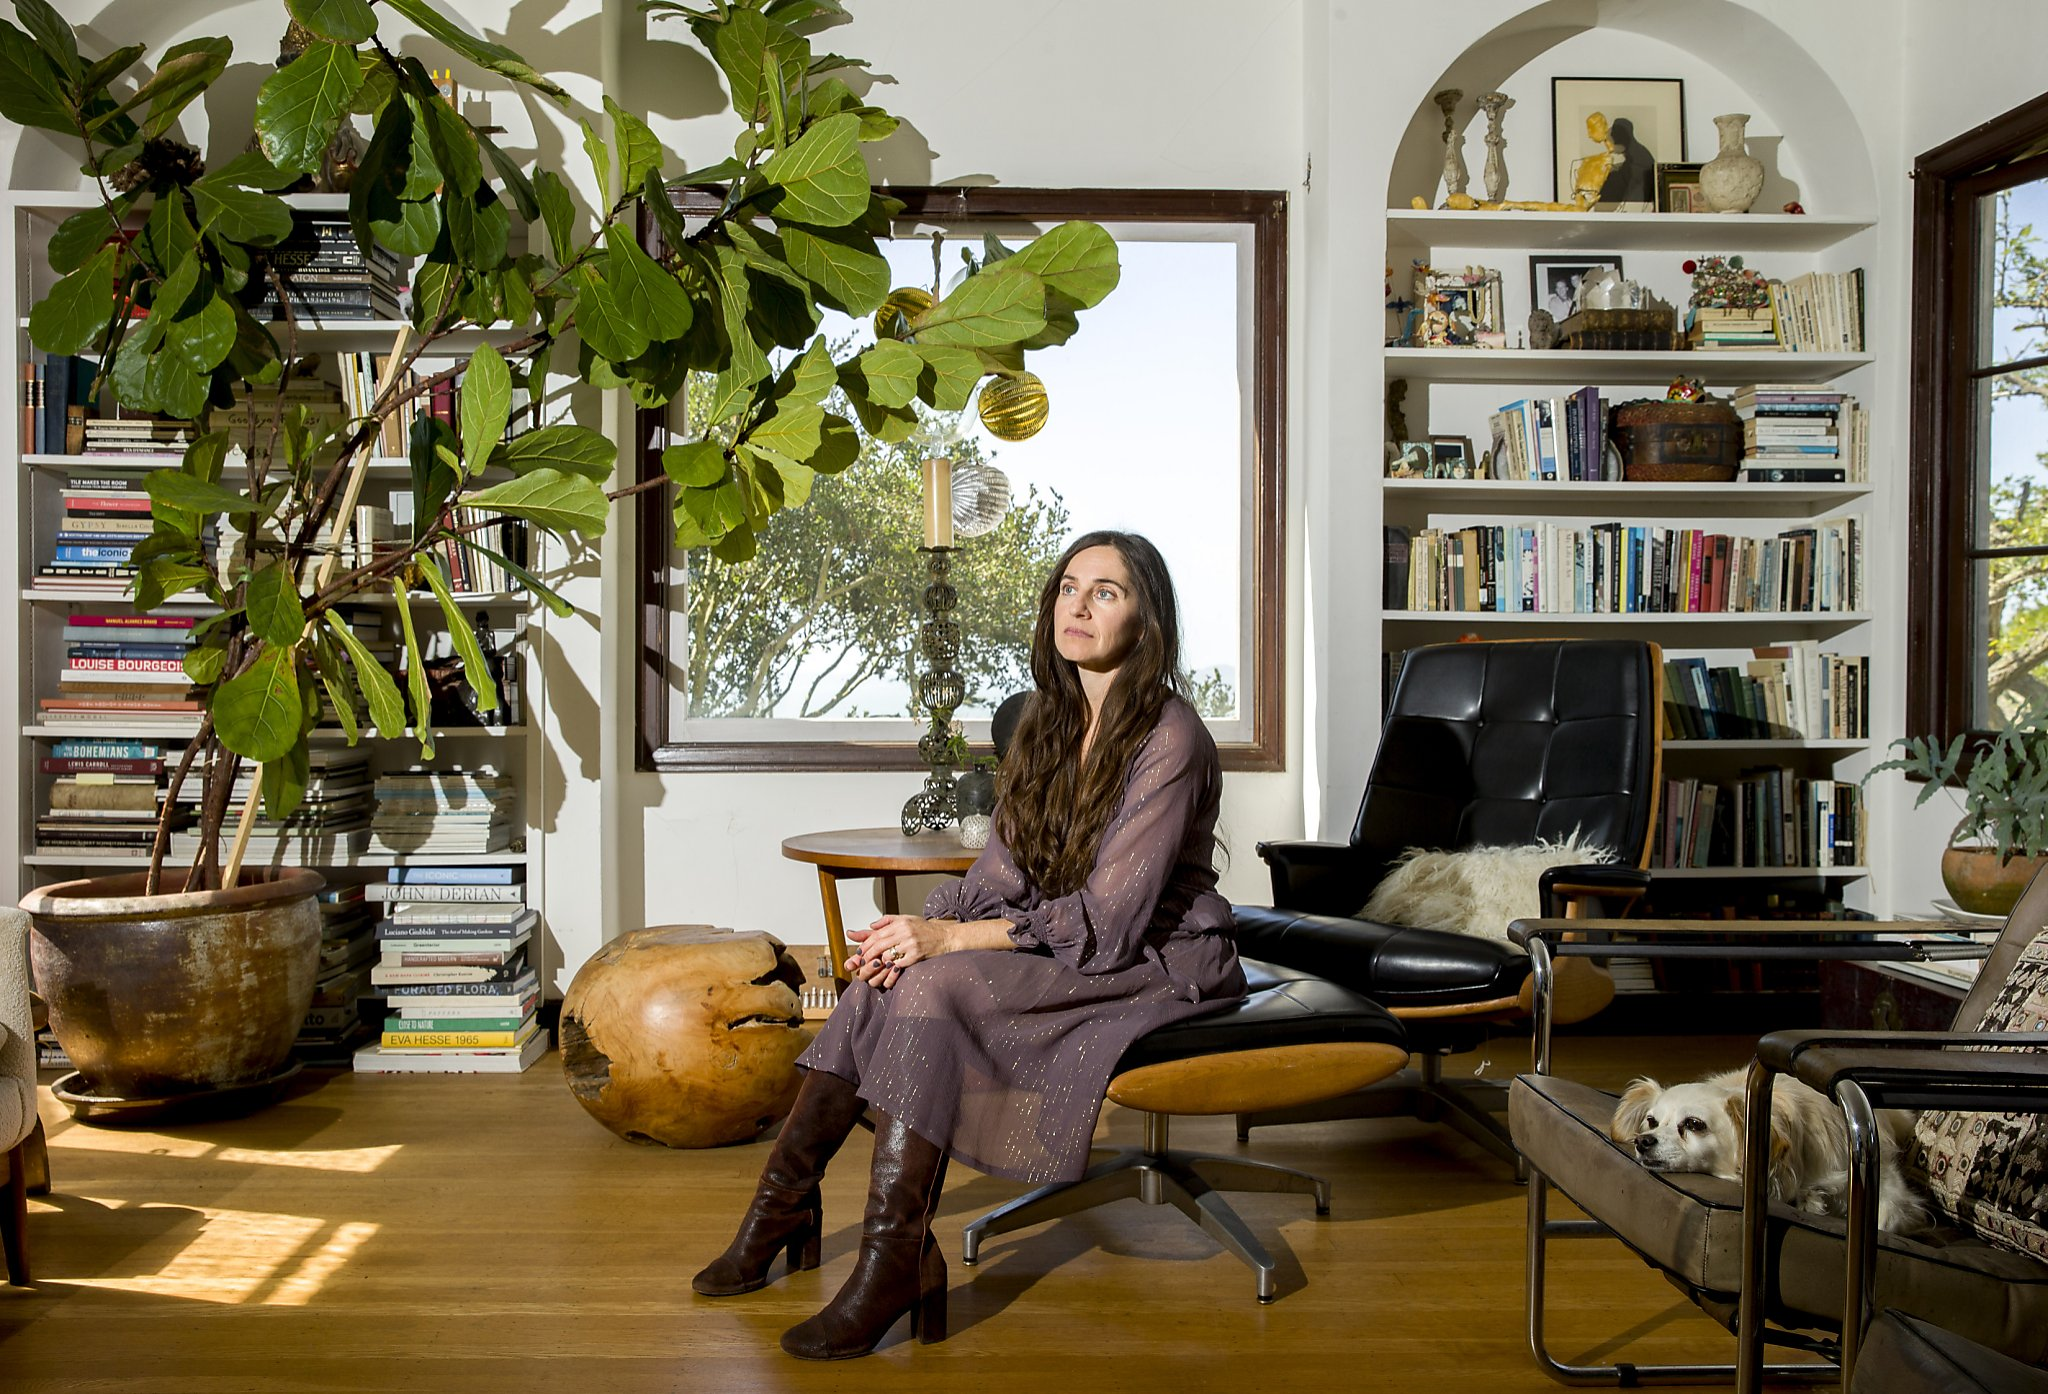 Fashion designer Erica Tanov at her Berkeley home last fall. Photograph by Santiago Mejia / The Chronicle 2017.